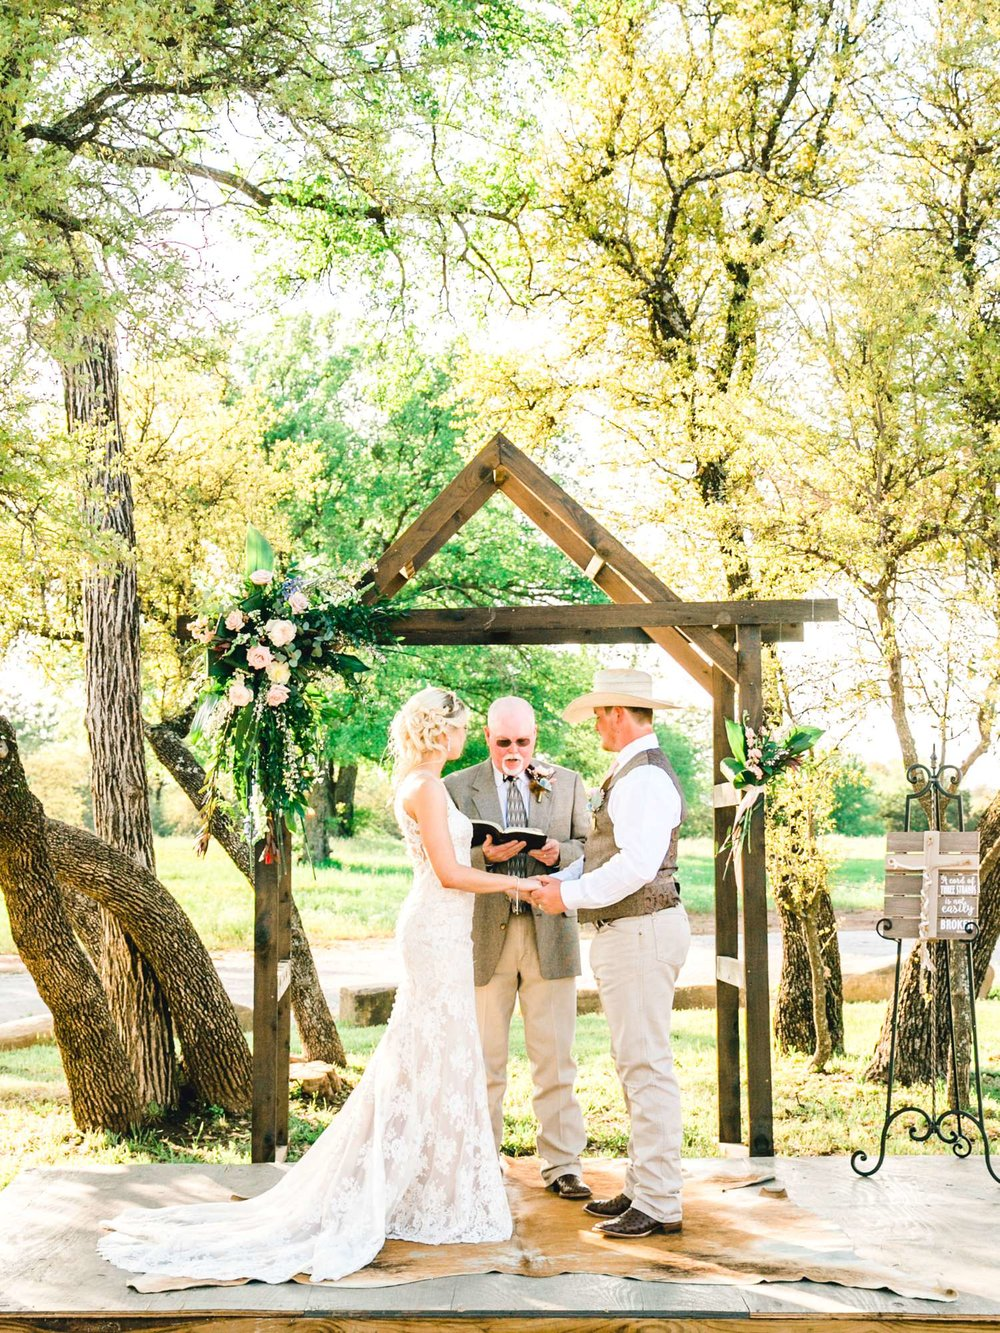 SARAH+TREVOR+BADGETT+SPARROW+CREEK+GRAHAM+TEXAS+ALLEEJ+WEDDINGS_0074.jpg